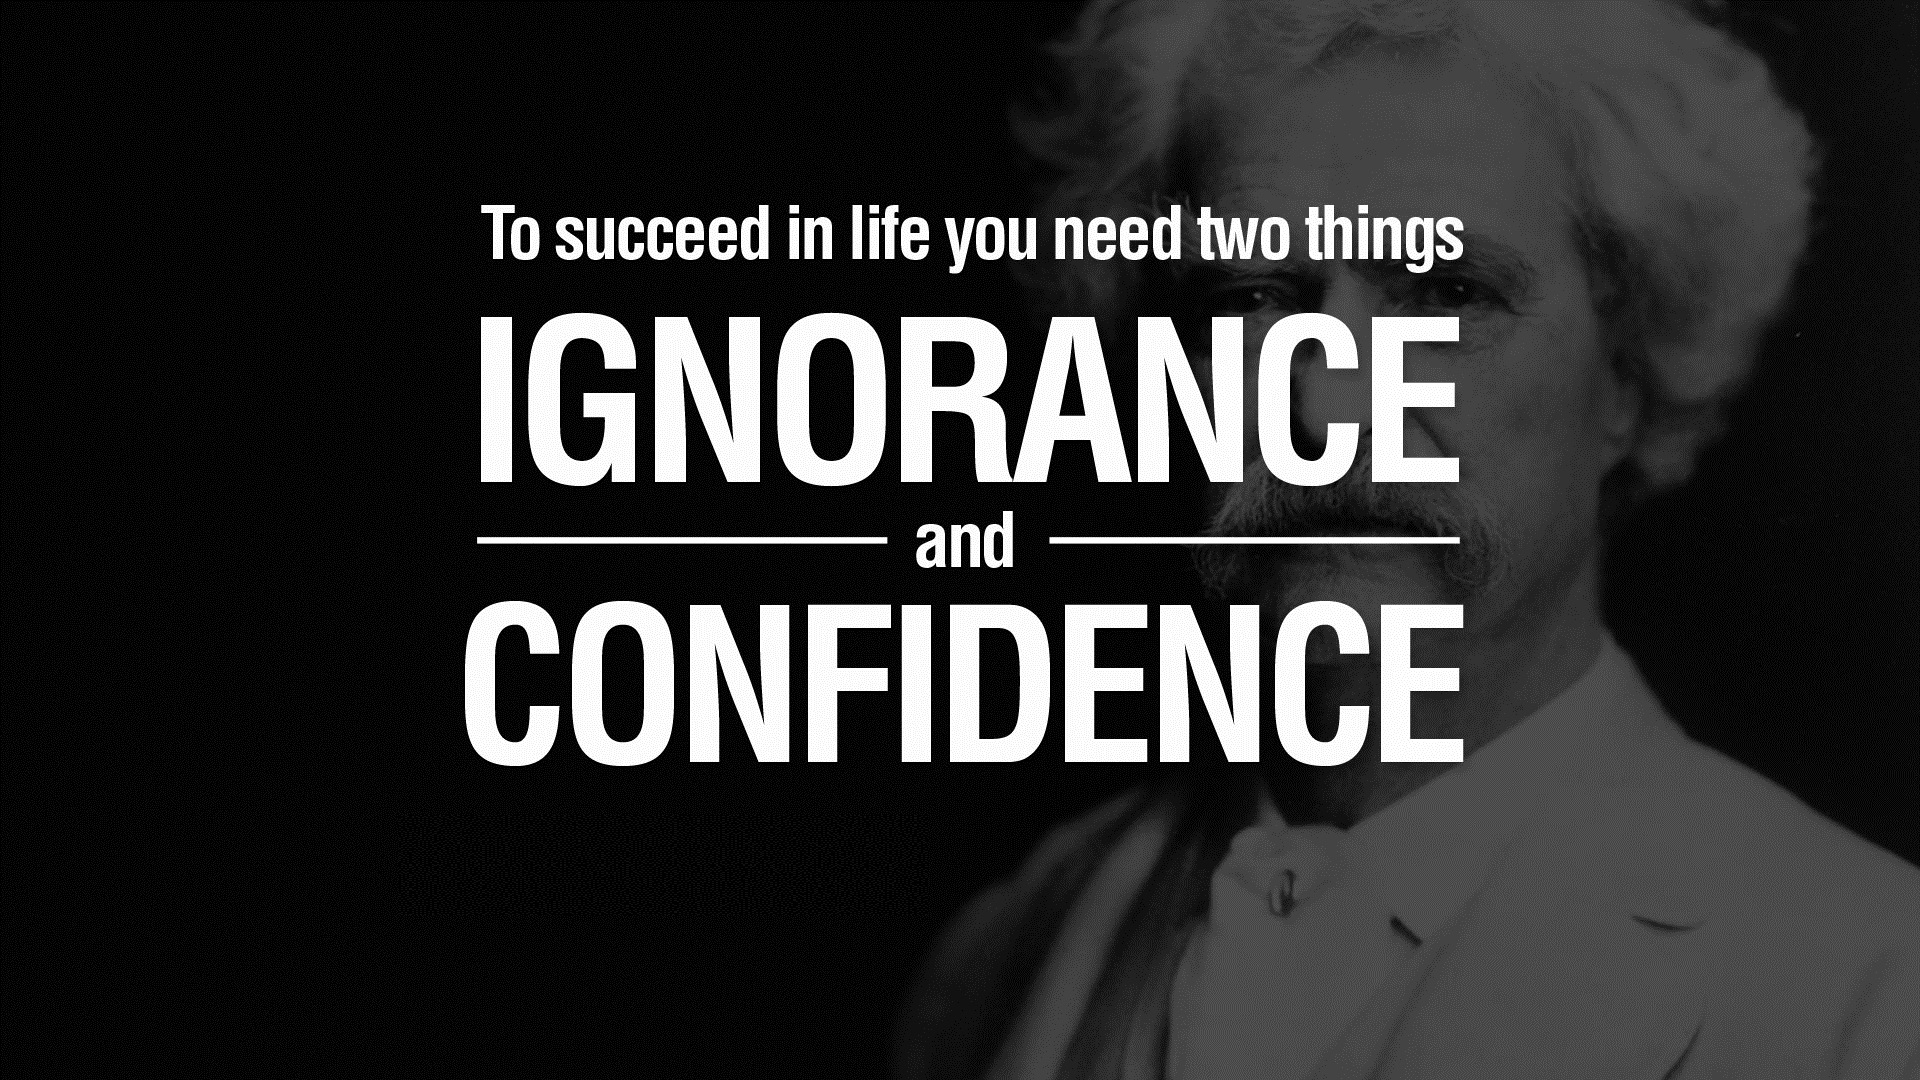 To succeed in life you need two things ignorance and confidence.